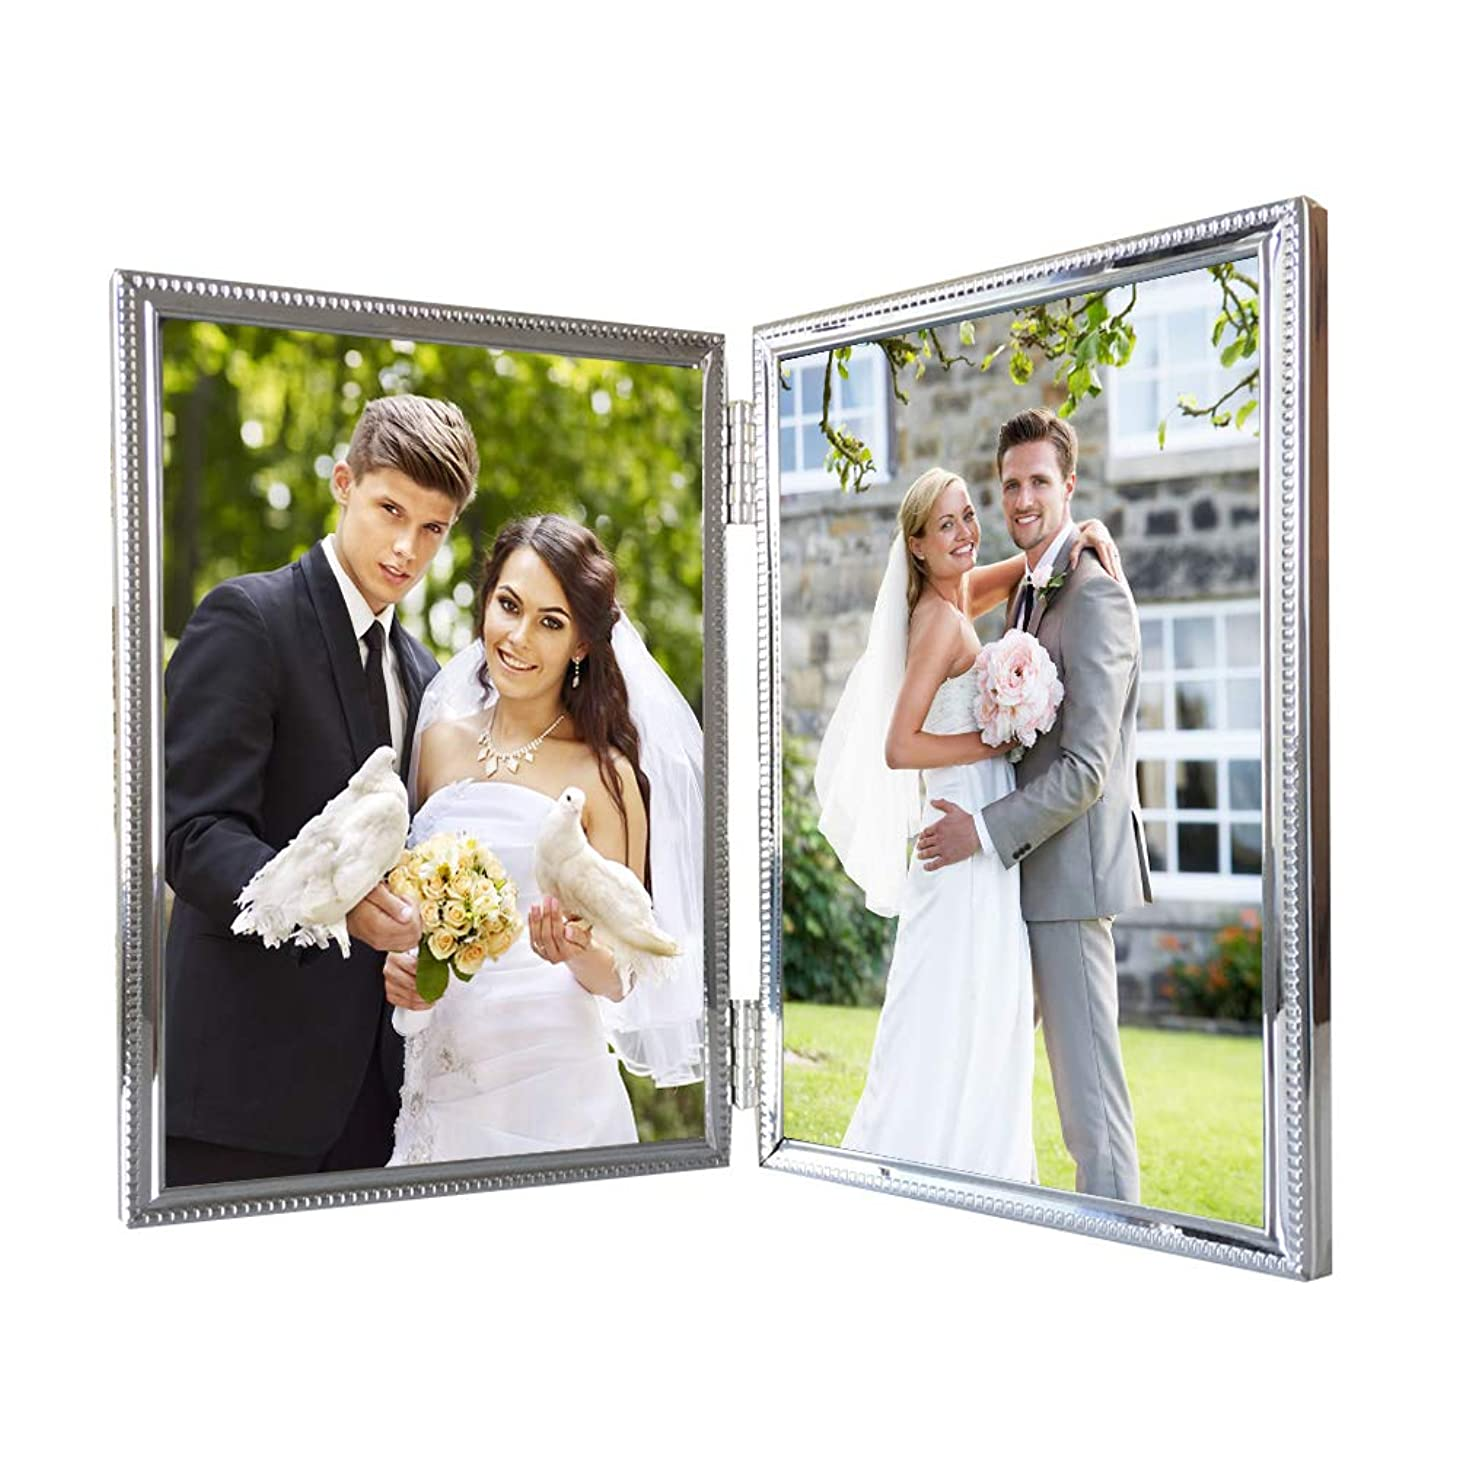 Double Picture Frames 4x6 Metal Hinged Photo Frame for 2 Photos Vertical Dual Openings Portrait Landscape Tabletop Decorative, Anniversary Gift for Wonan Friends Wedding Presents, 6 by 4 Inch Silver